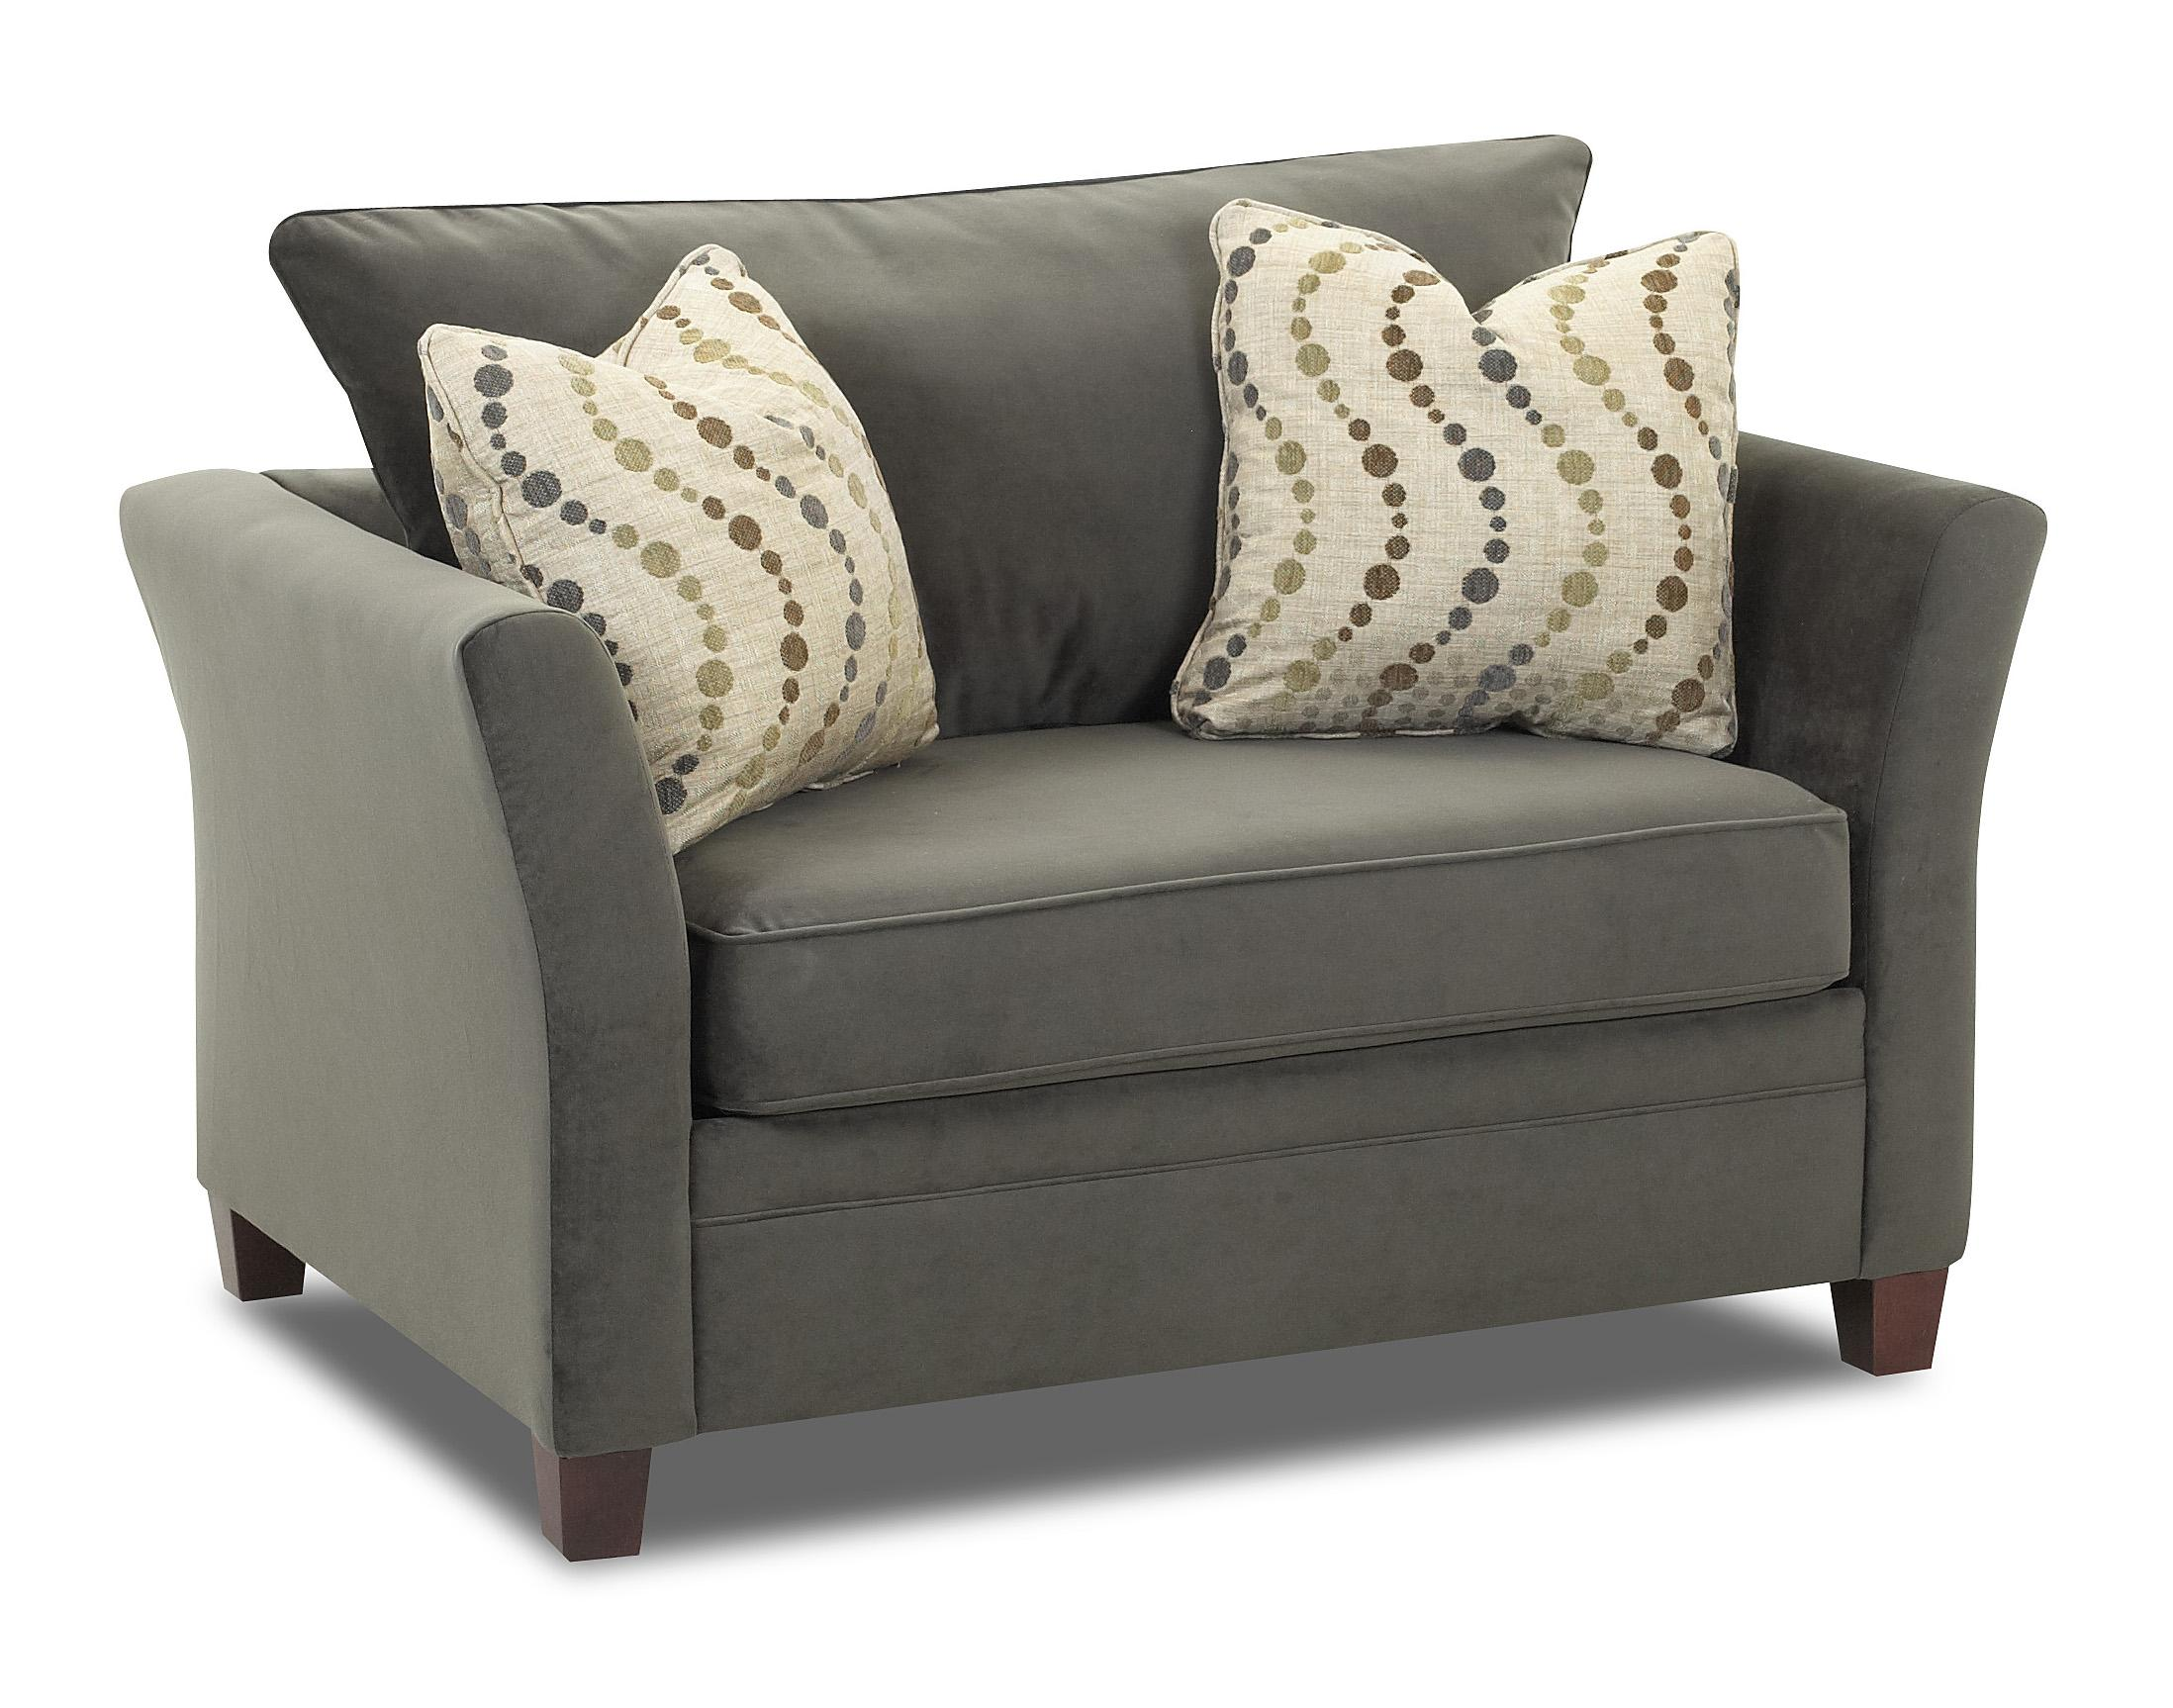 Taylor Contemporary Chair And A Half By Klaussner Wolf Furniture